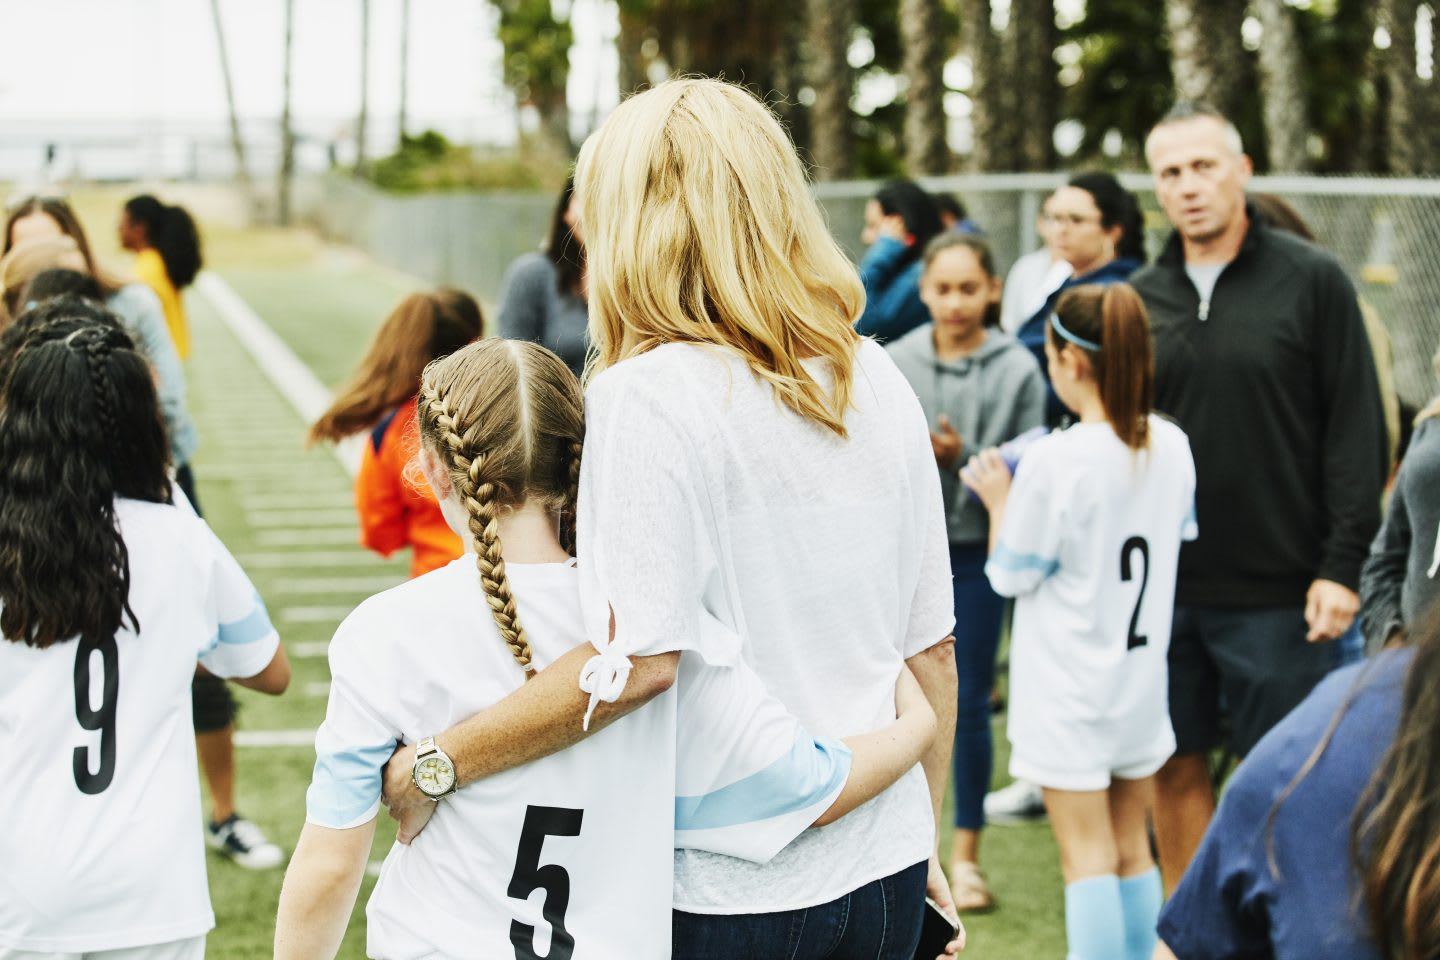 Mother embracing young female soccer player on sidelines after game. Purpose, purpose driven life, joy, GamePlanA.